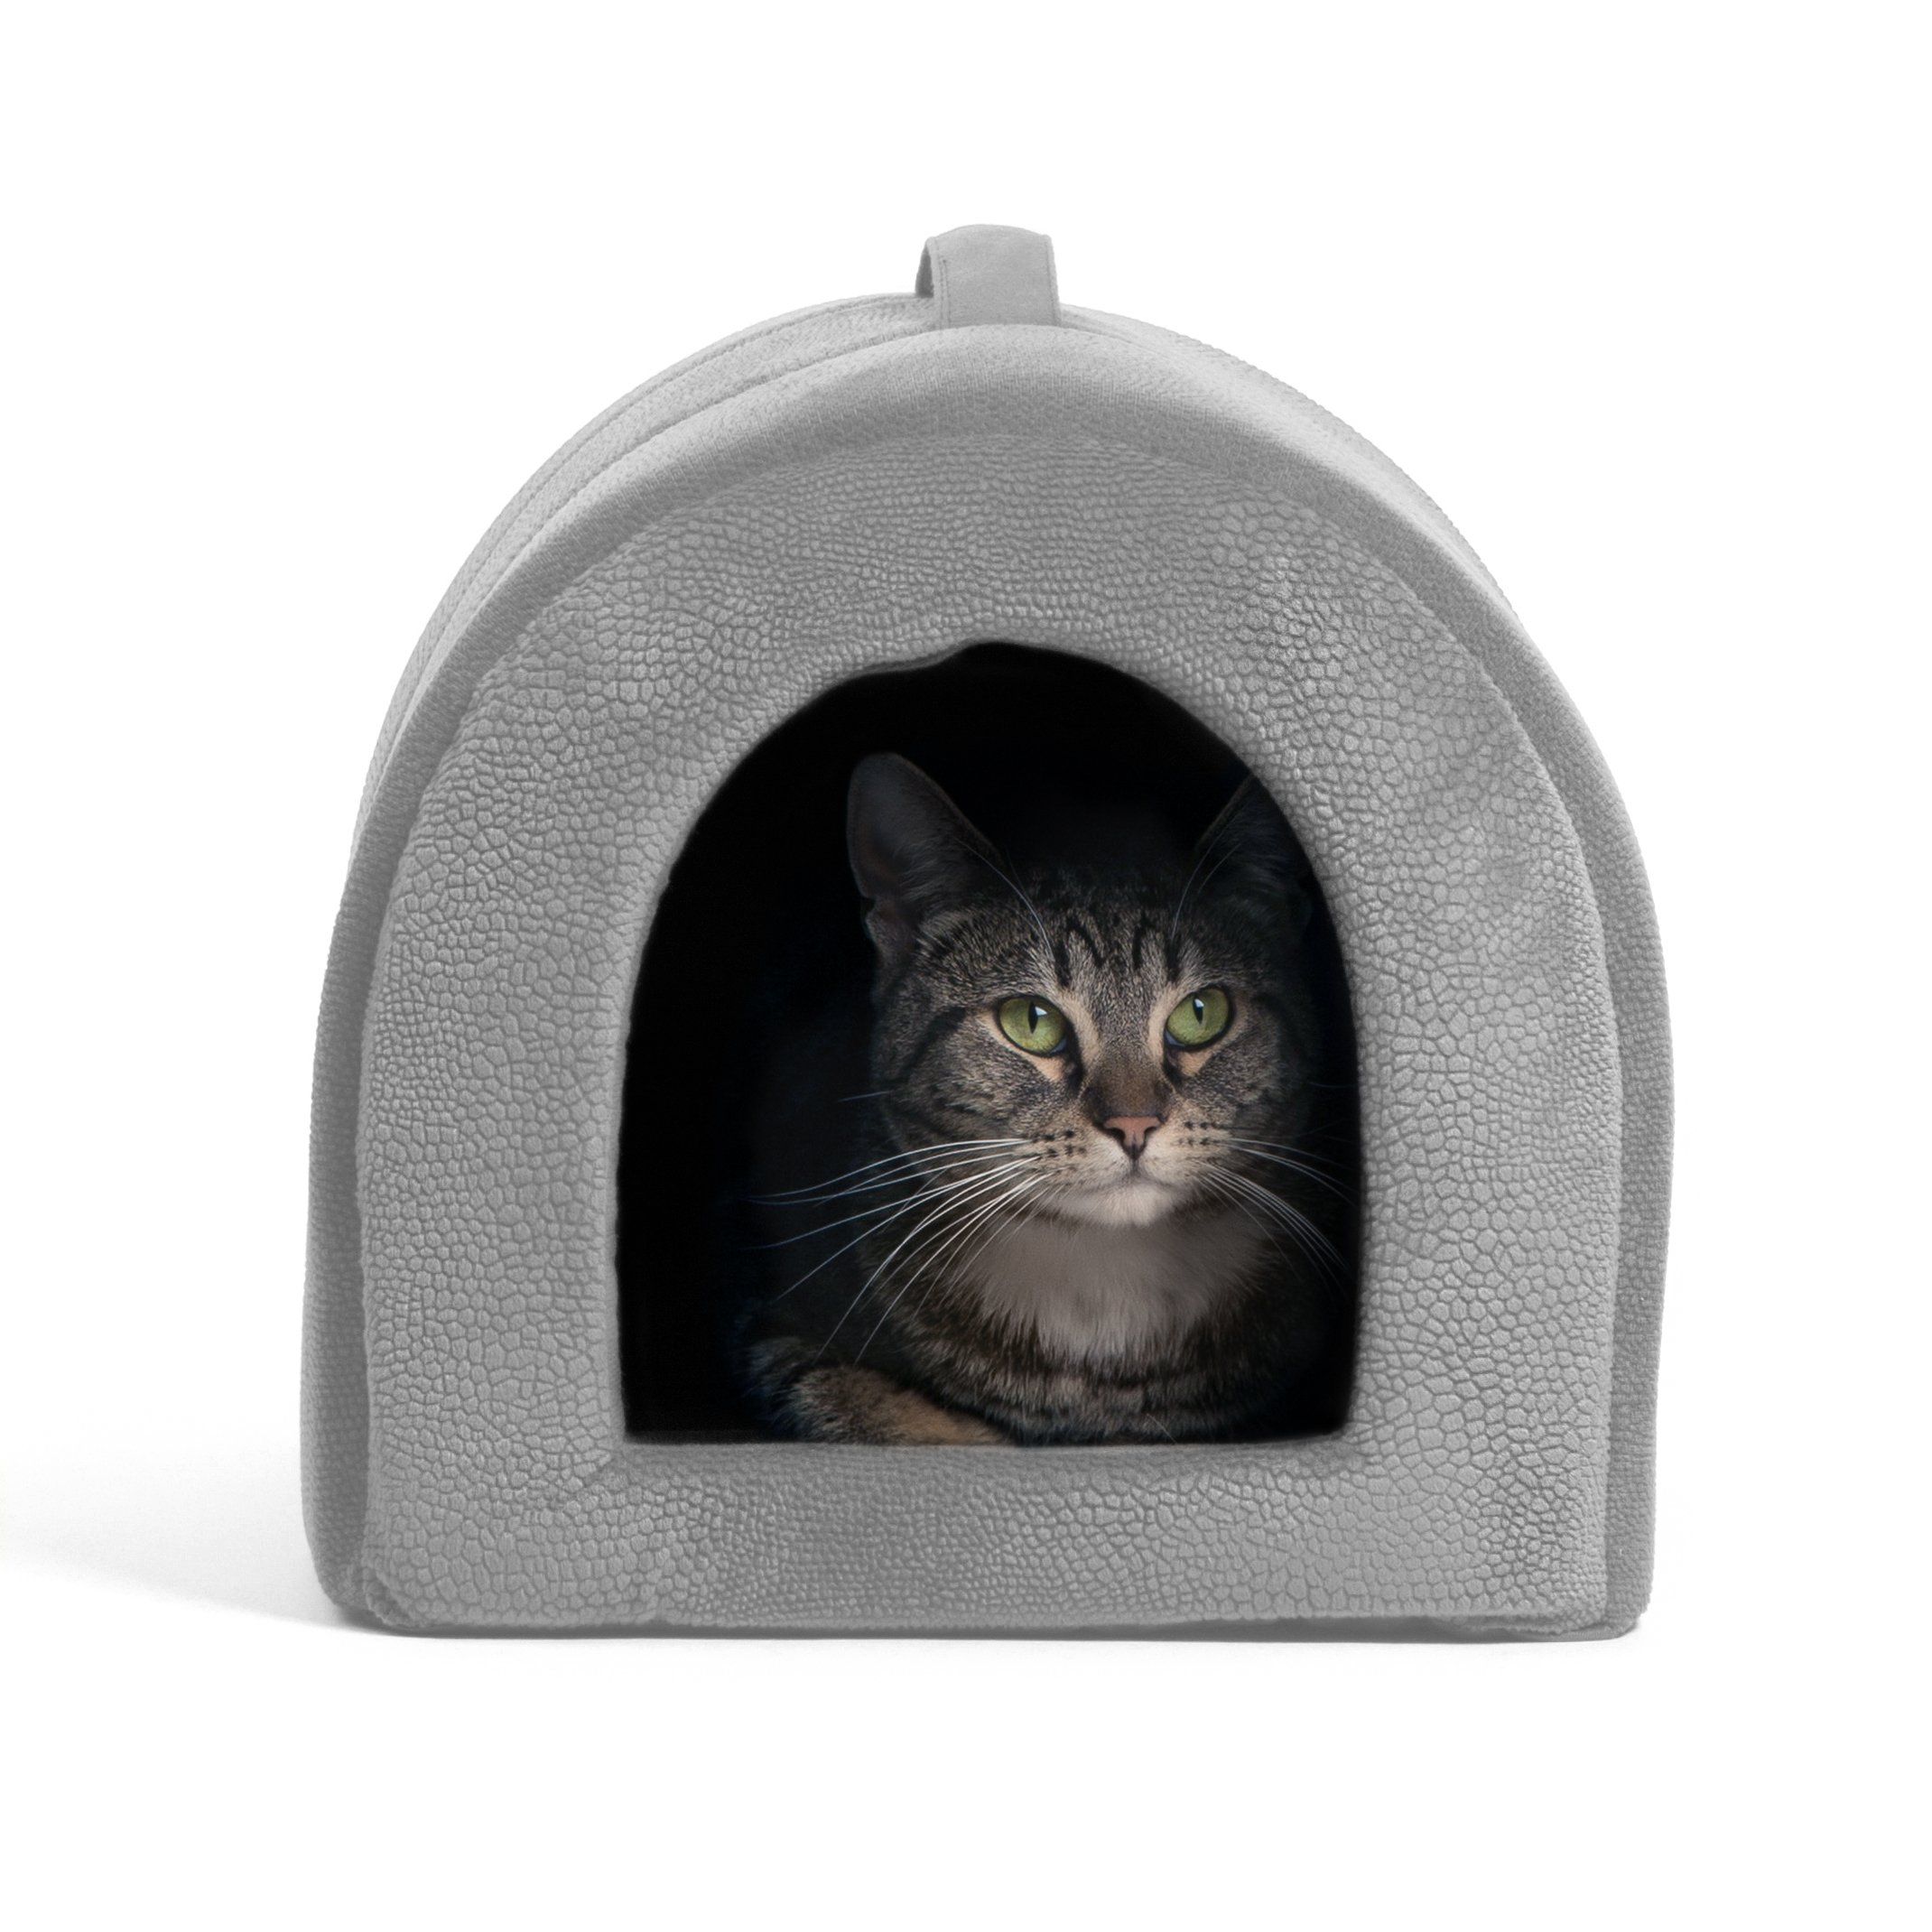 Best Friends by Sheri Pet Igloo Hut, Sherpa / Ilan / Lux – Cat and Small Dog Bed Offers Privacy and Warmth for Better…